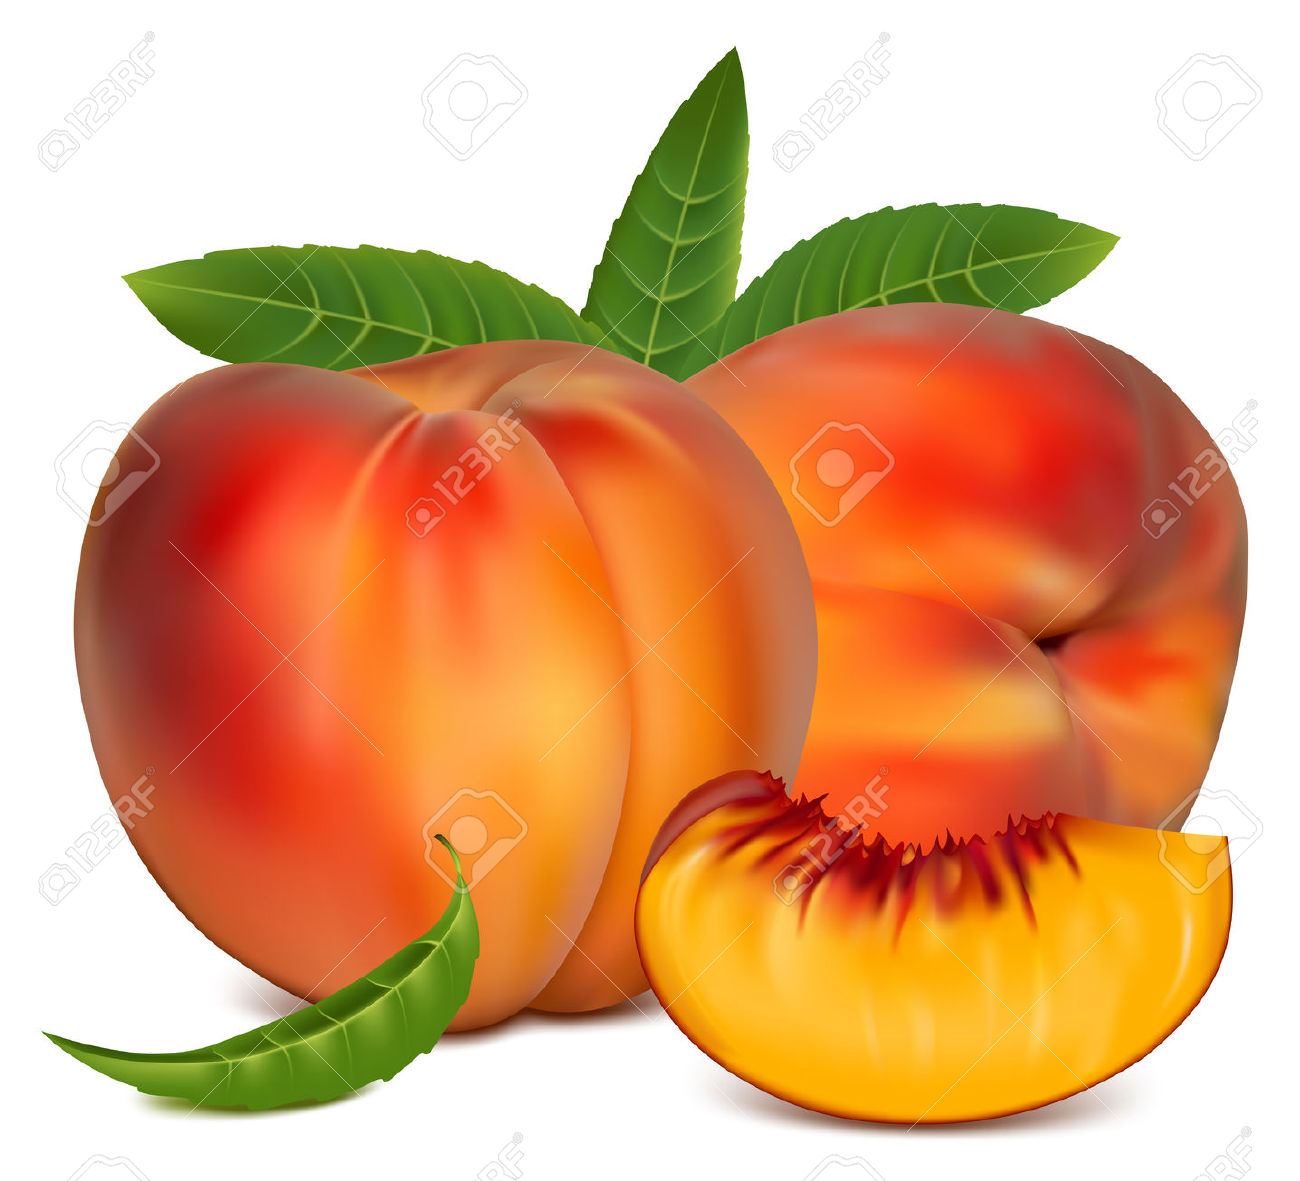 Ripe fruits clipart - Clipground